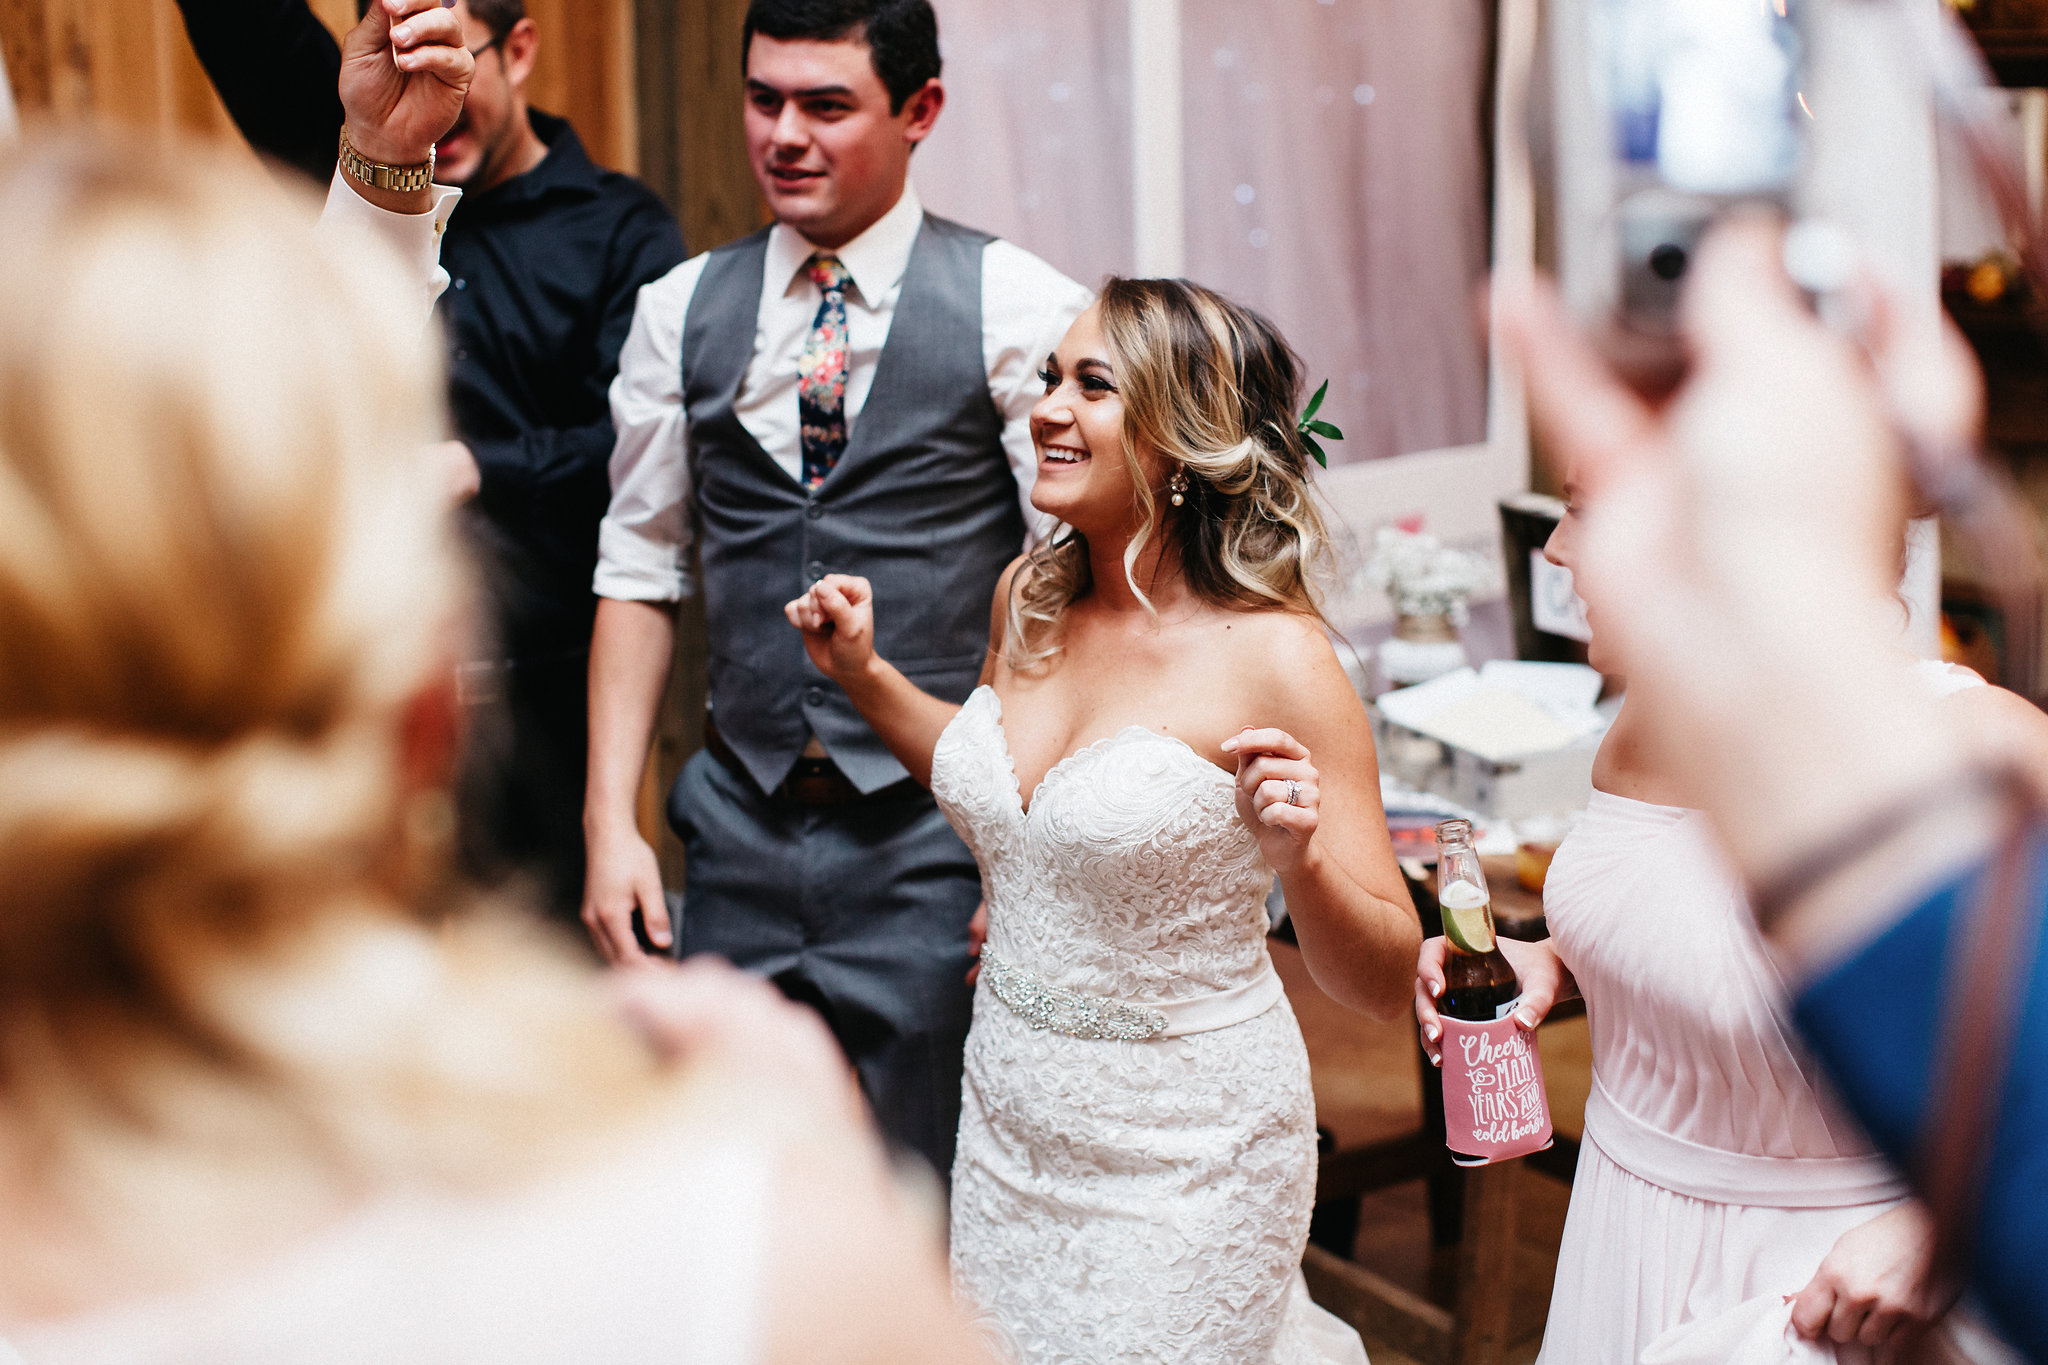 Ashley&NathanMarried2017-11-10at19.26.50PM41.jpg